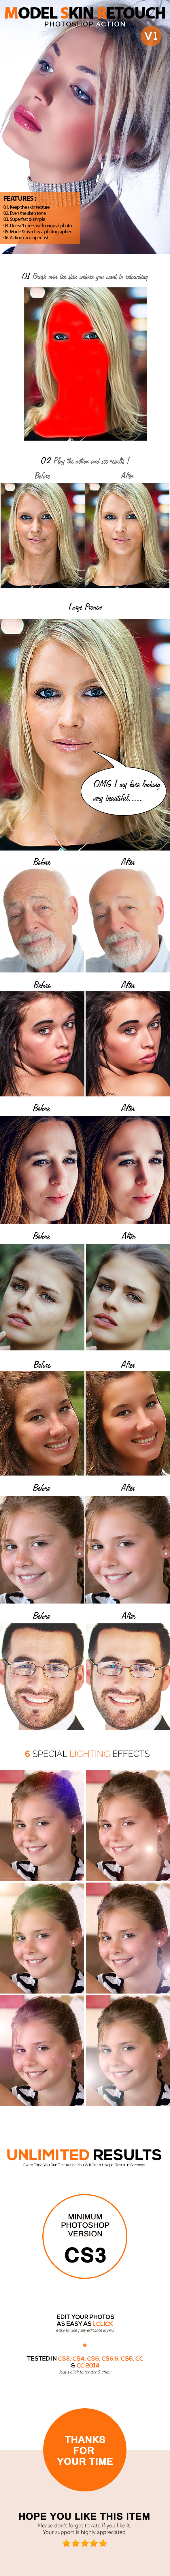 GraphicRiver Model Skin Retouch V1 Photoshop Action 10795644